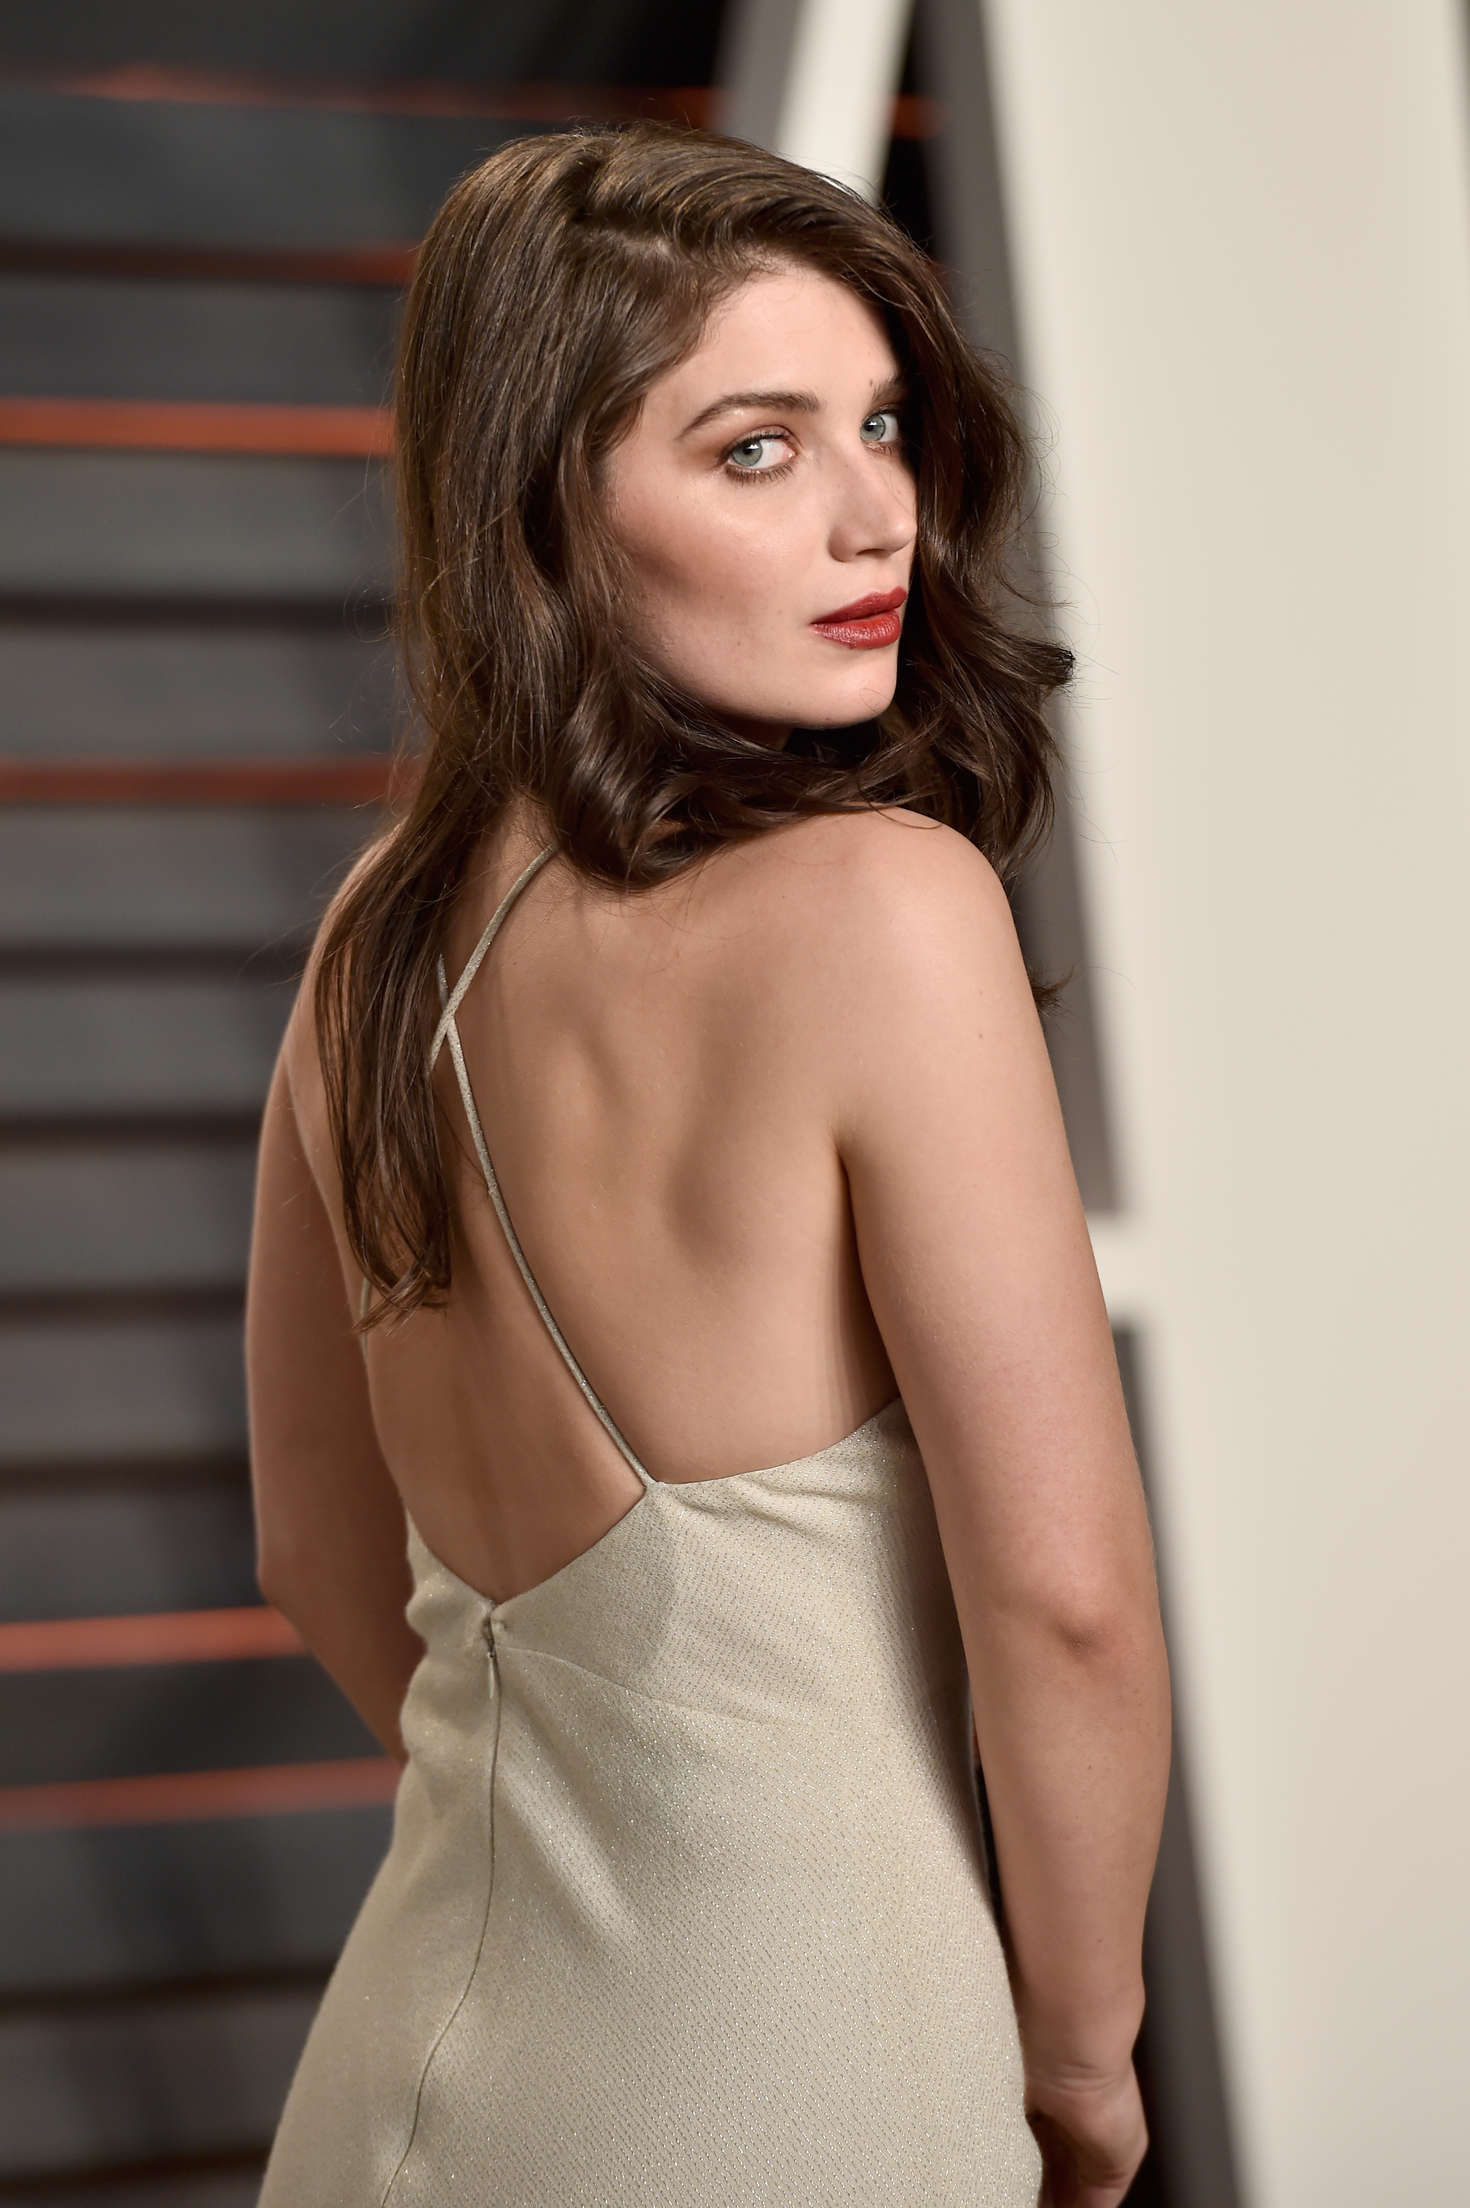 33 Hot Pictures Of Eve Hewson - Sizzling Robinhood Movie